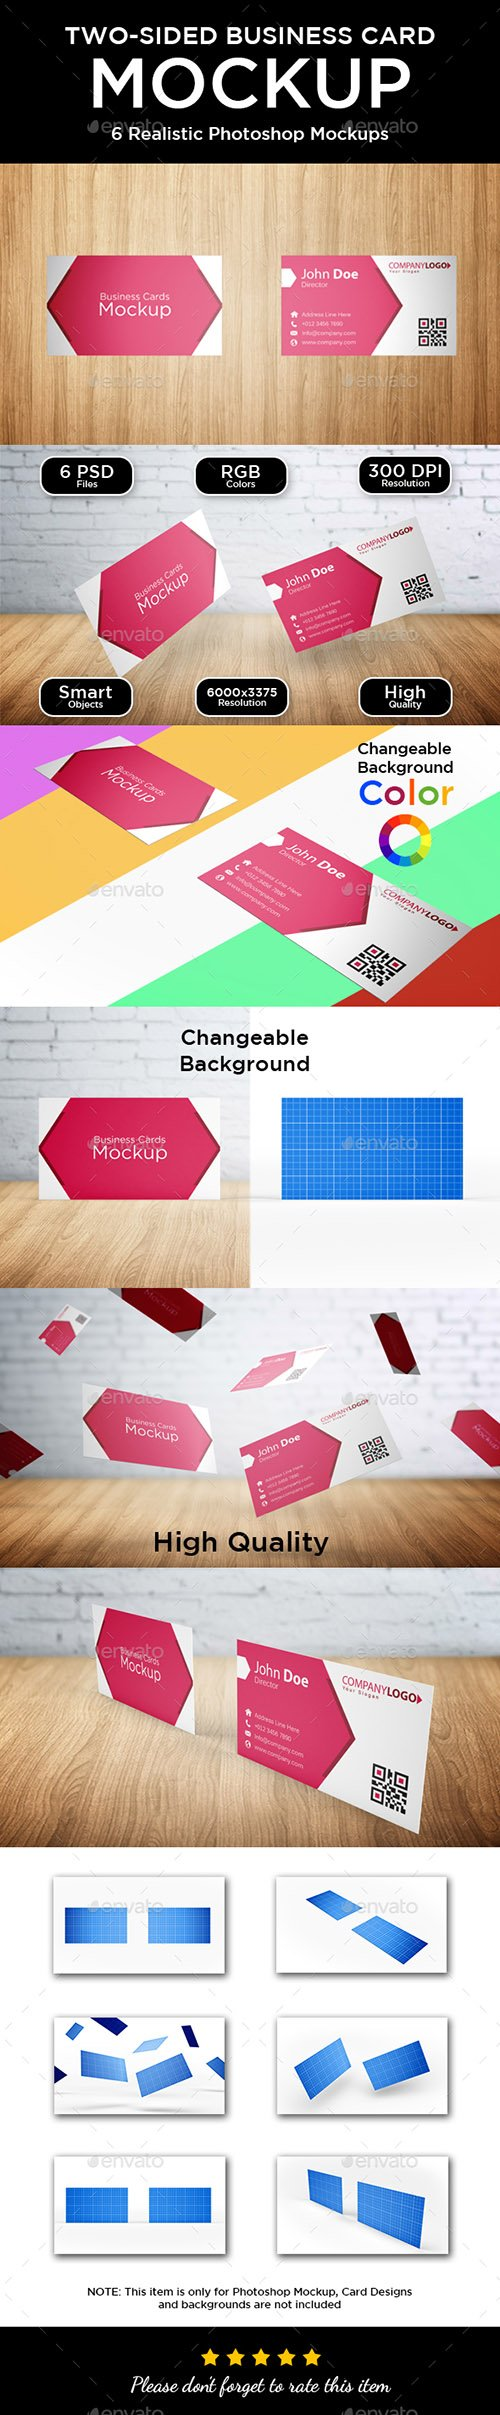 Business card mockup heroturko images card design and card template business card psd heroturko choice image card design and card template business card mockup heroturko gallery reheart Image collections